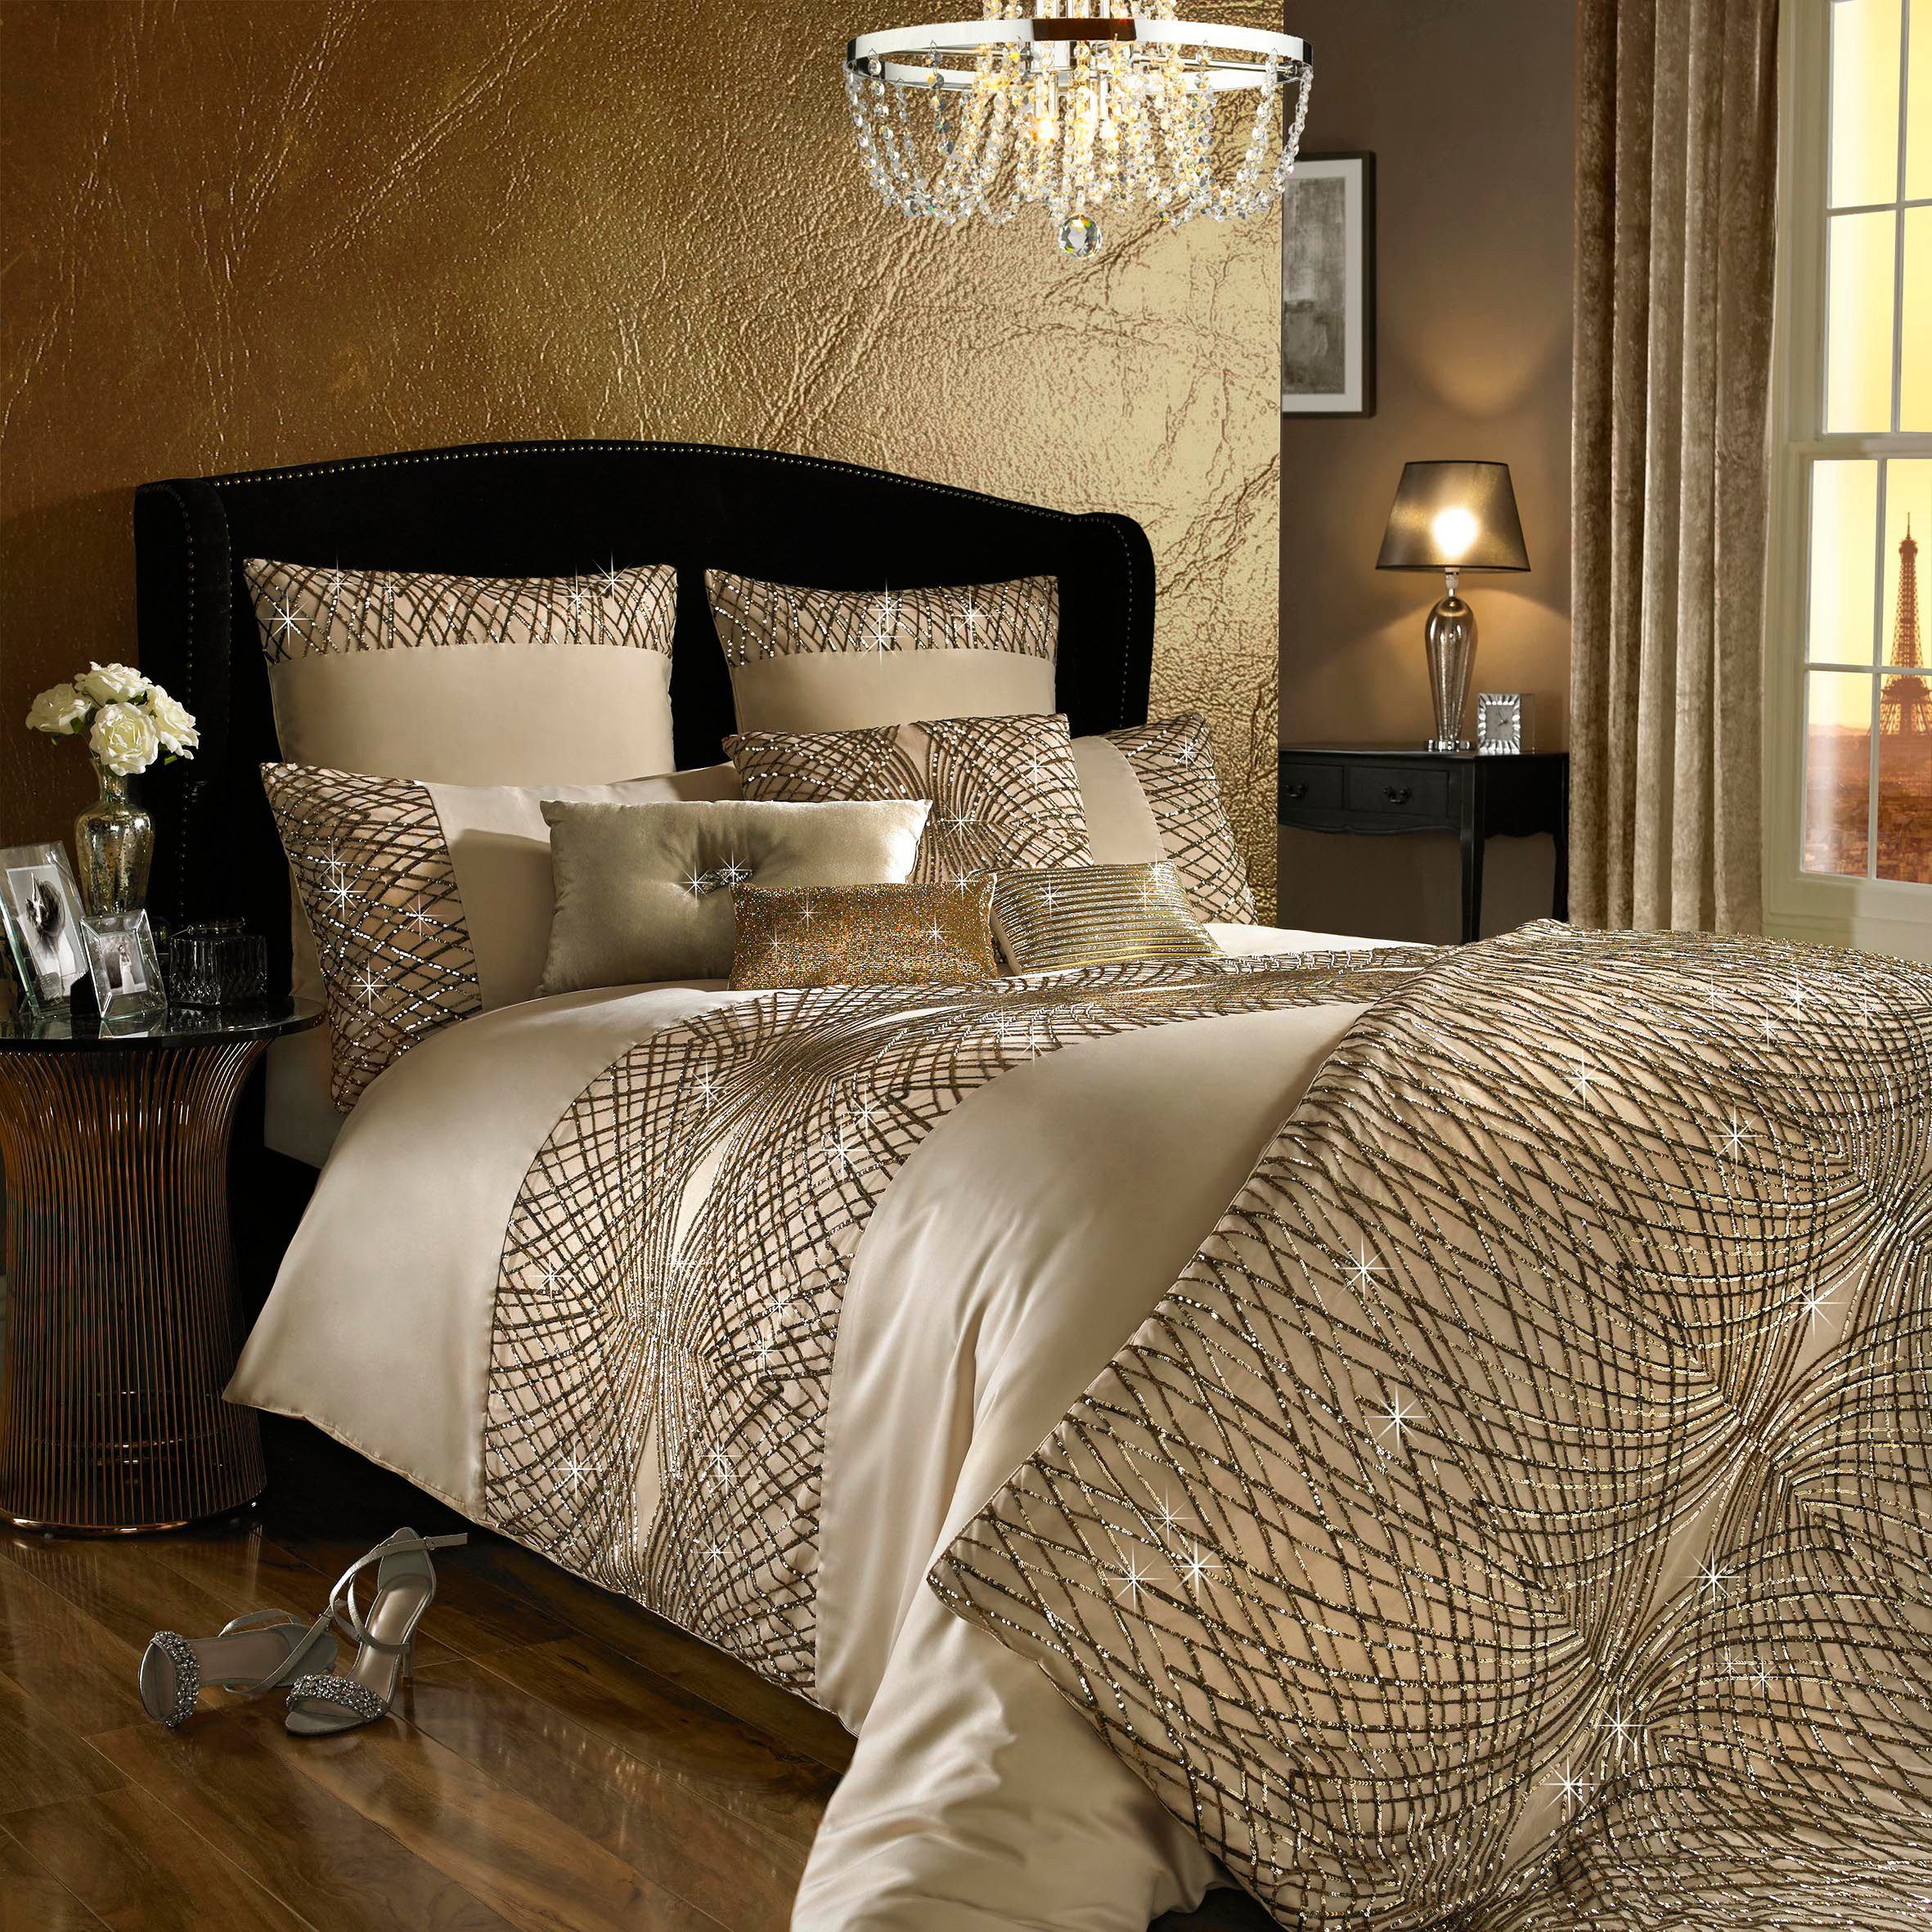 House Of Fraser Kylie Minogue Bedding Housetagz